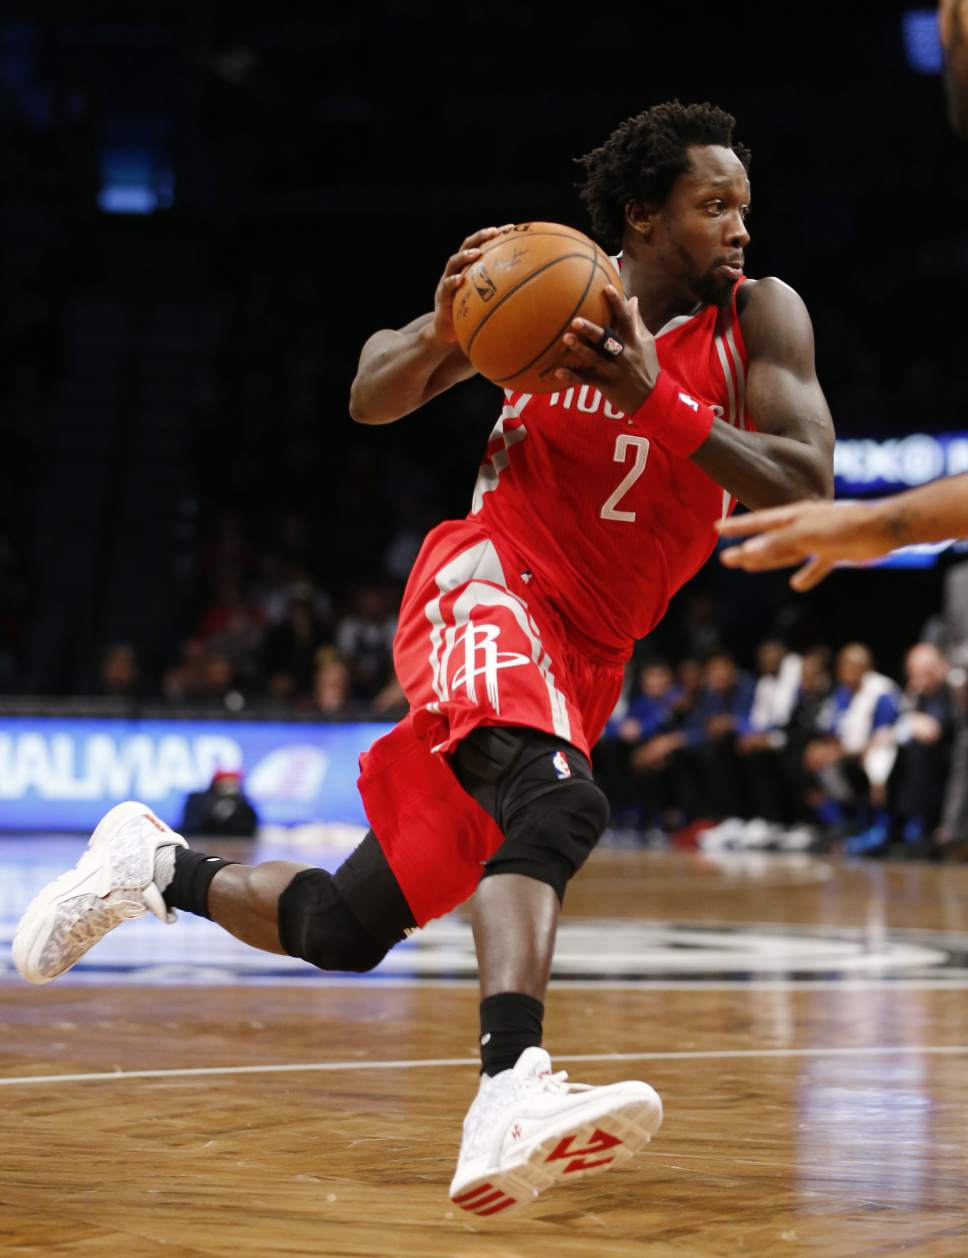 Houston Rockets guard Patrick Beverley (2) drives down court in the first half of an NBA basketball game, Tuesday, Dec. 8, 2015, in New York. (AP Photo/Kathy Willens)